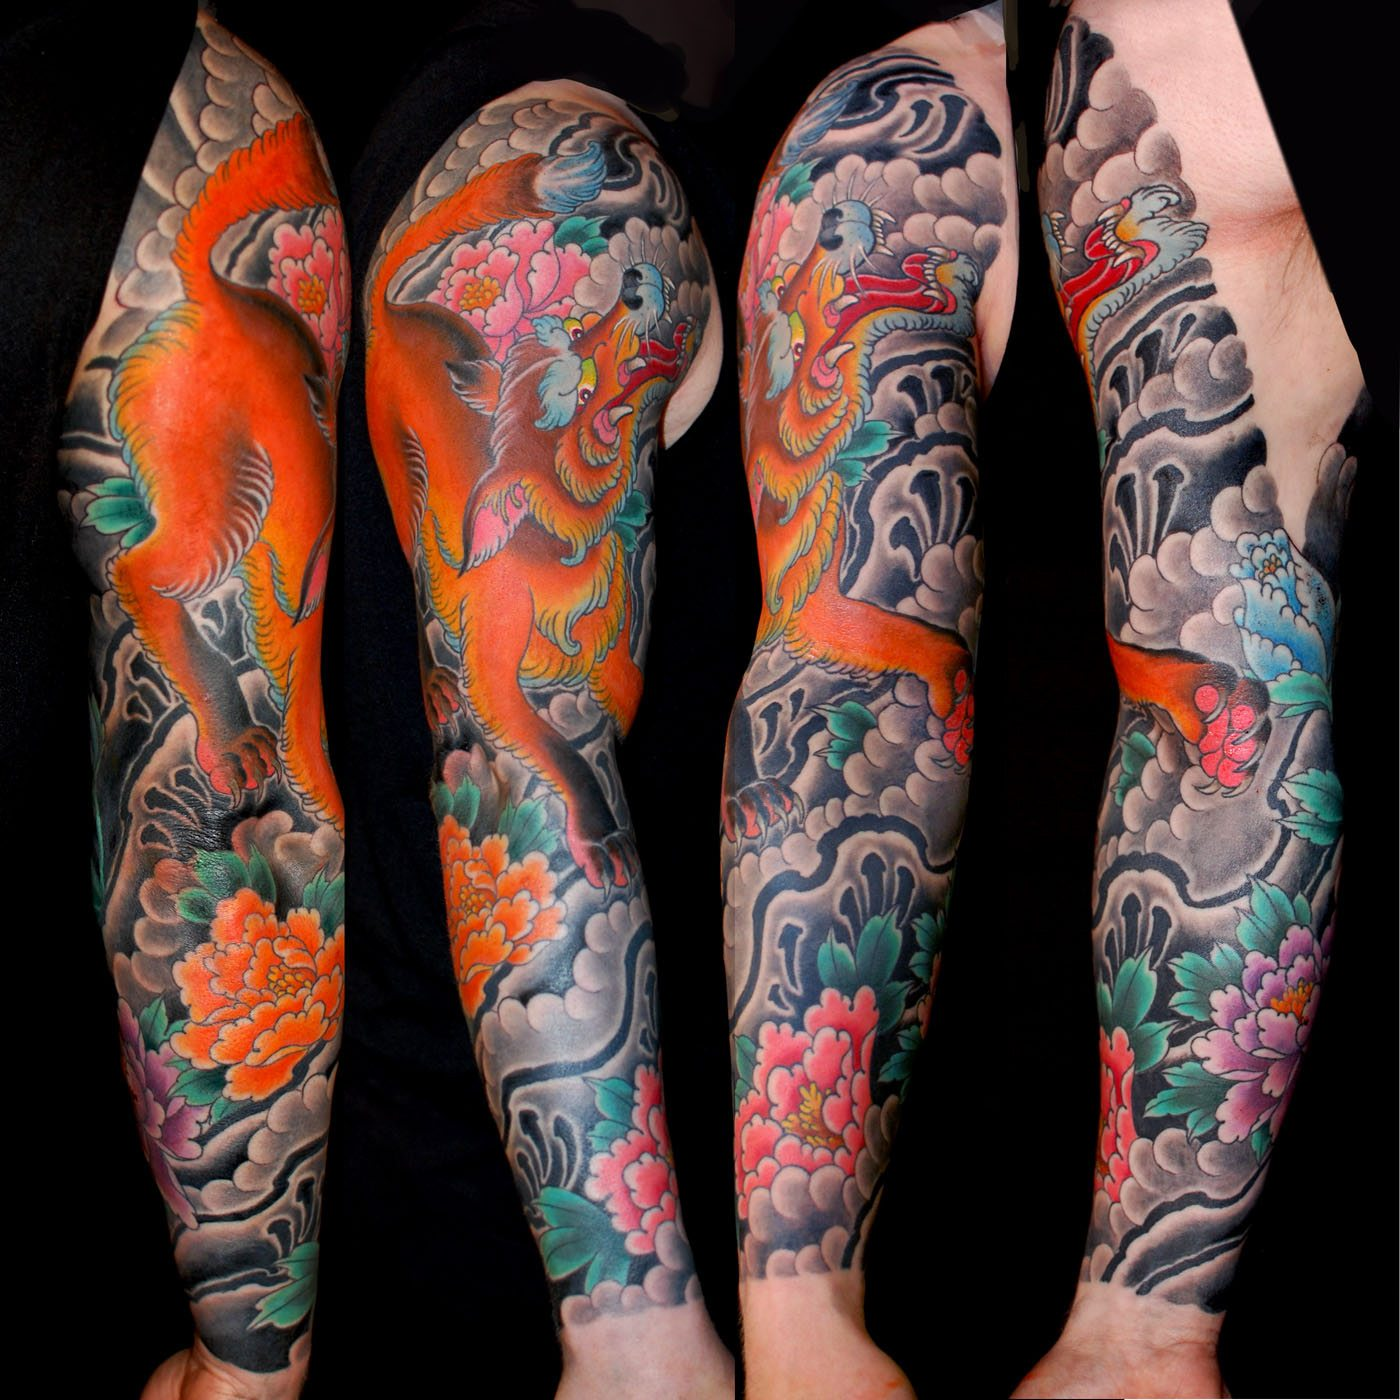 Japanese Style Sleeve Tattoo Flowers Koi Samurai: Animals Flowers Japanese Kitsune Sleeve Tattoo